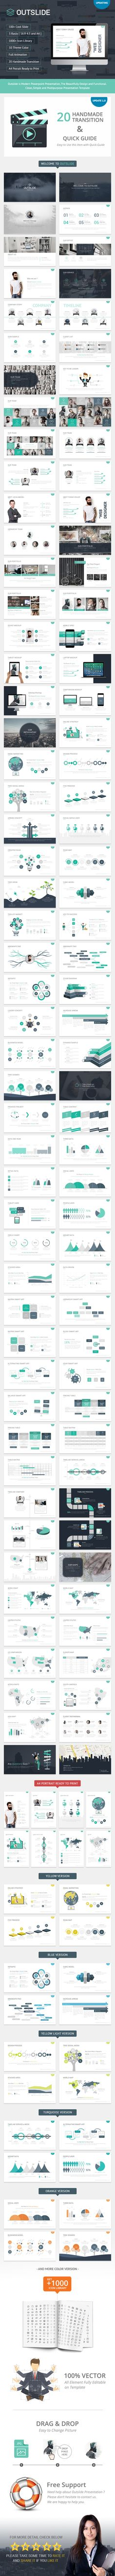 Outslide Presentation Template is simple and modern template for multipurpose presentation business or personal use bring your company to the next level.